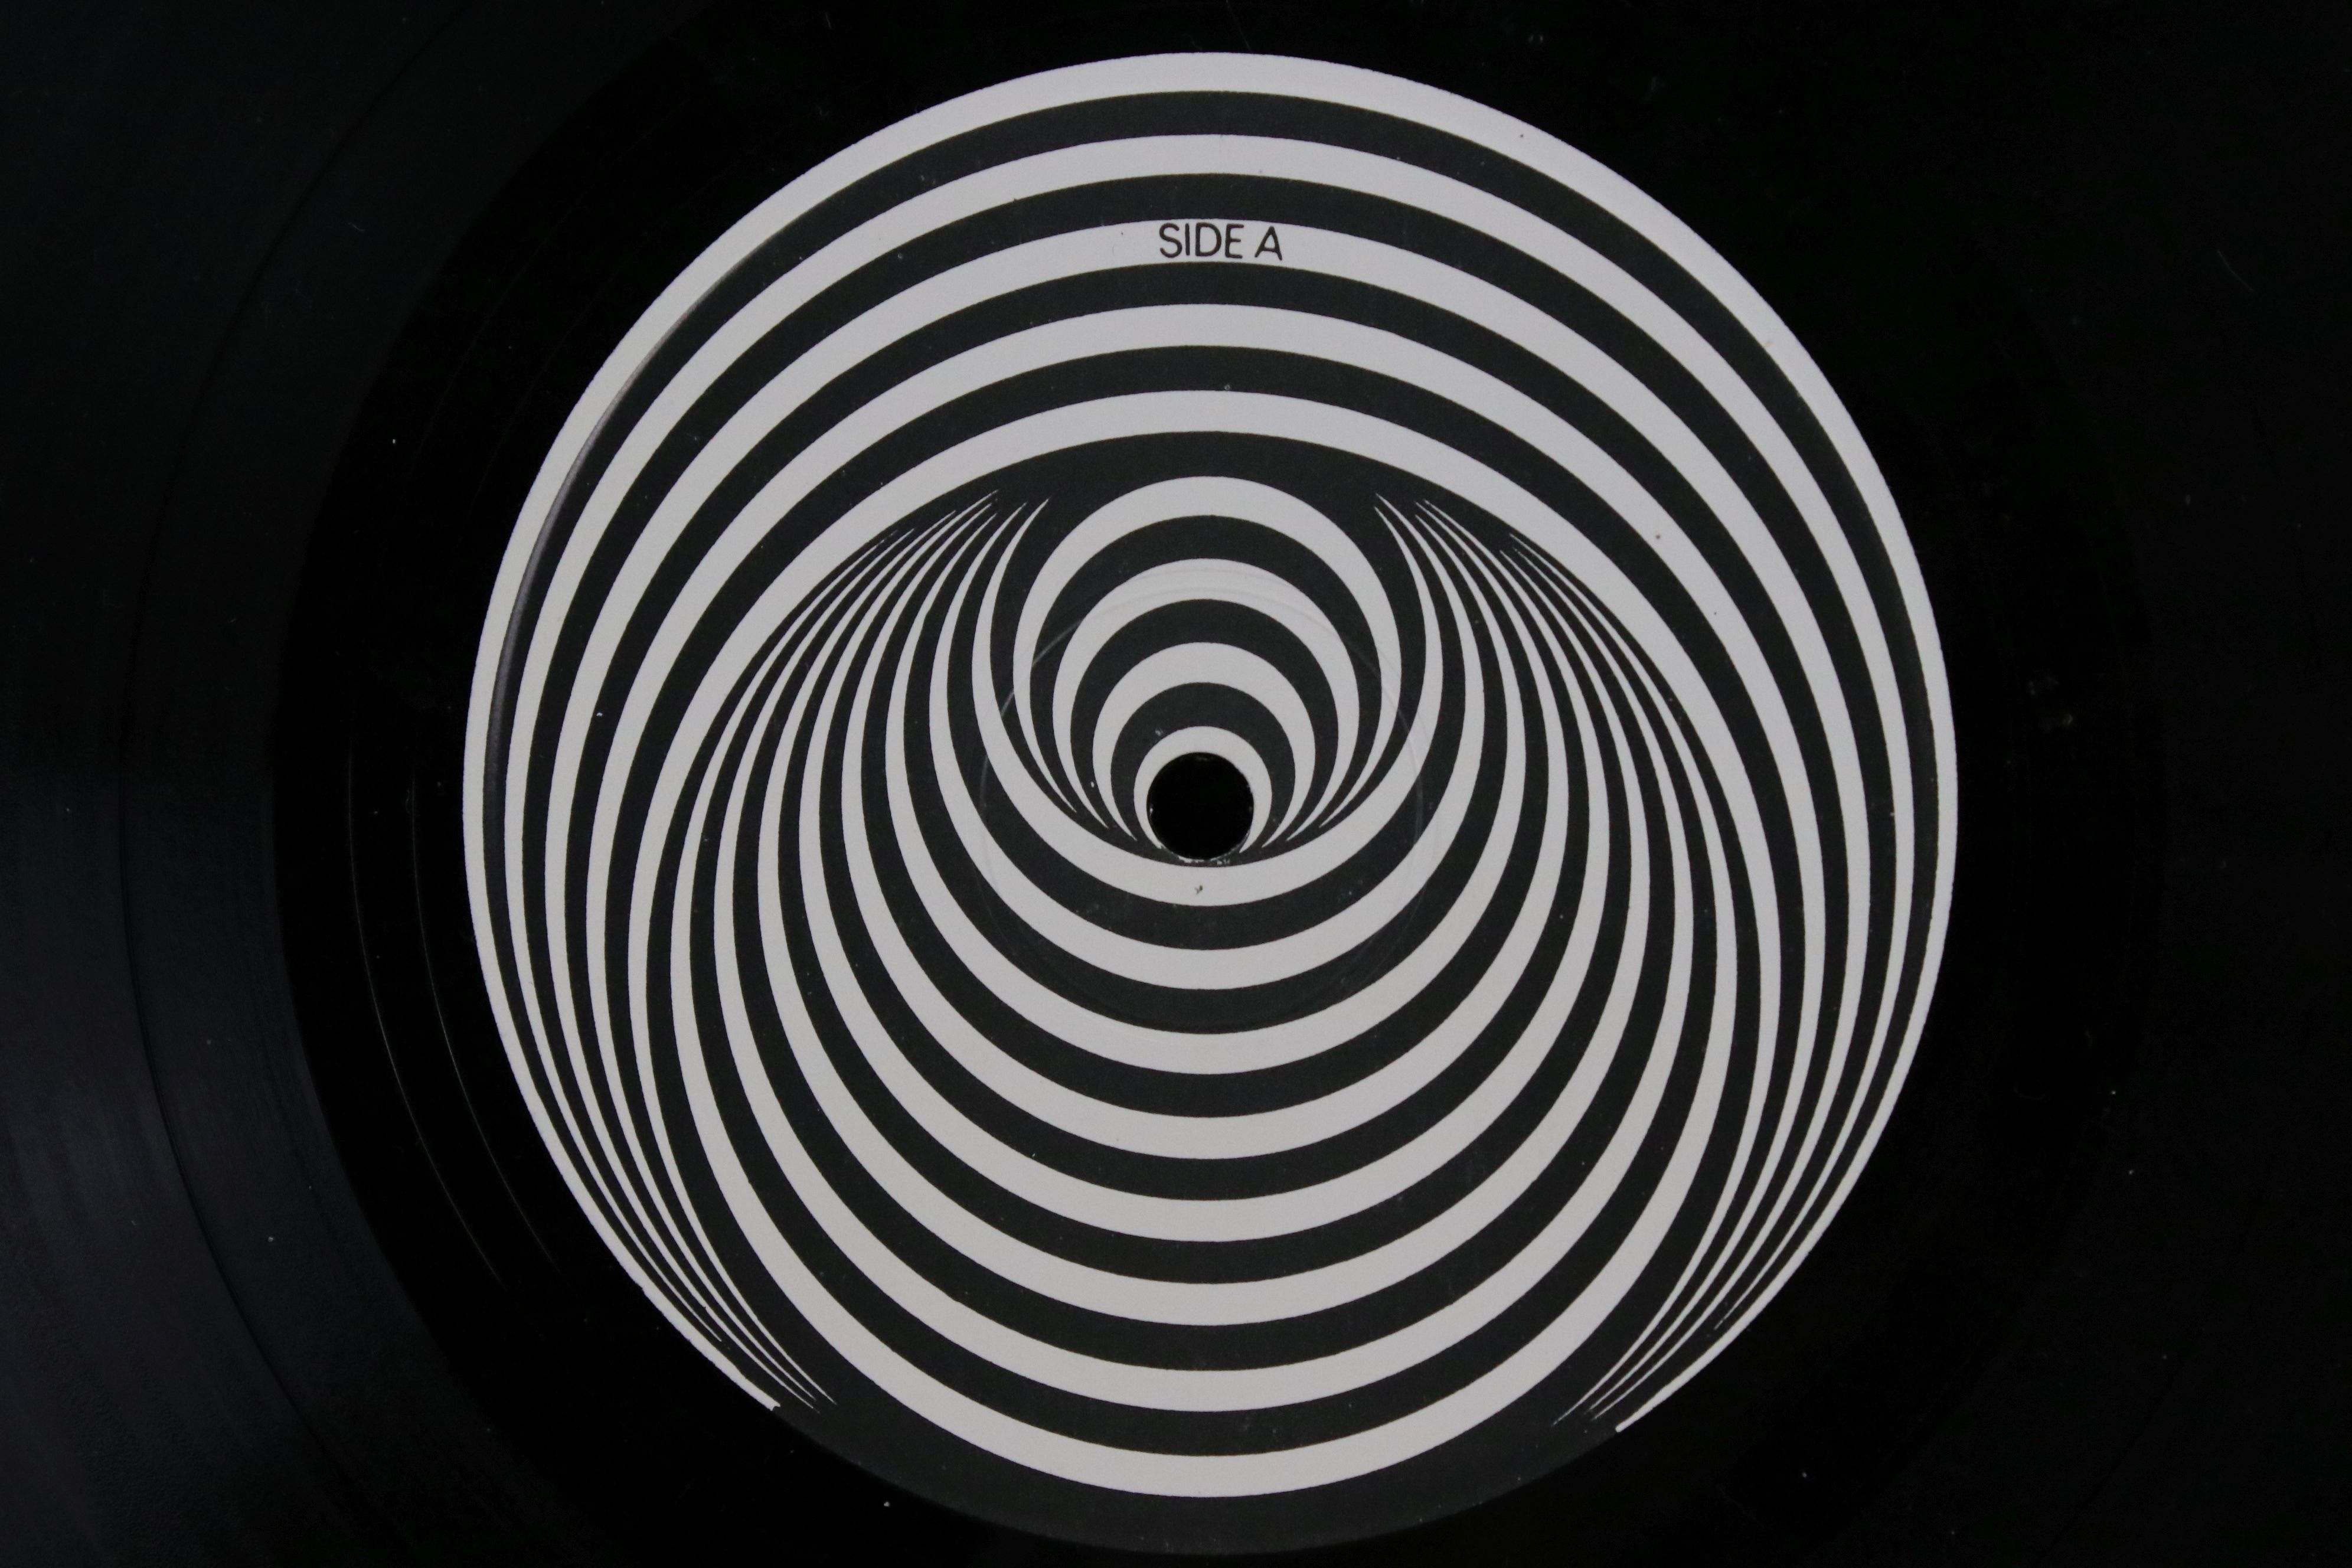 Vinyl - Ramases 2 LP's to include Space Hymns (Vertigo 6360 046) with fold out sleeve & original - Image 3 of 8